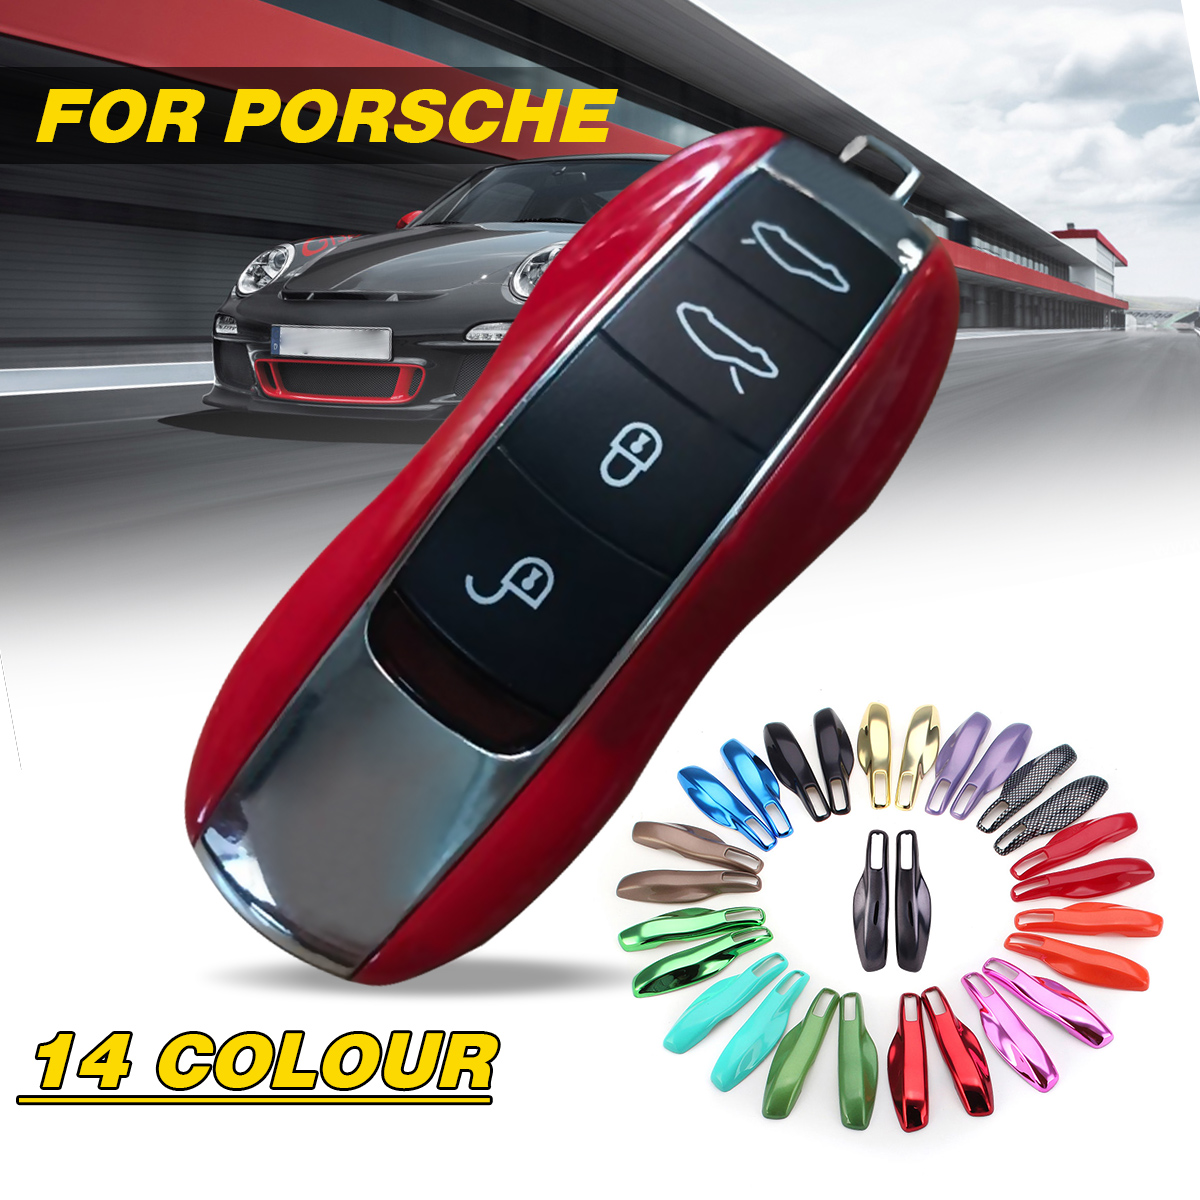 1Pc Replace Refit Cover Protection Shell Remote Key Case Fob Modified Key Shell For Porsche Panamera Macan Cayman 911